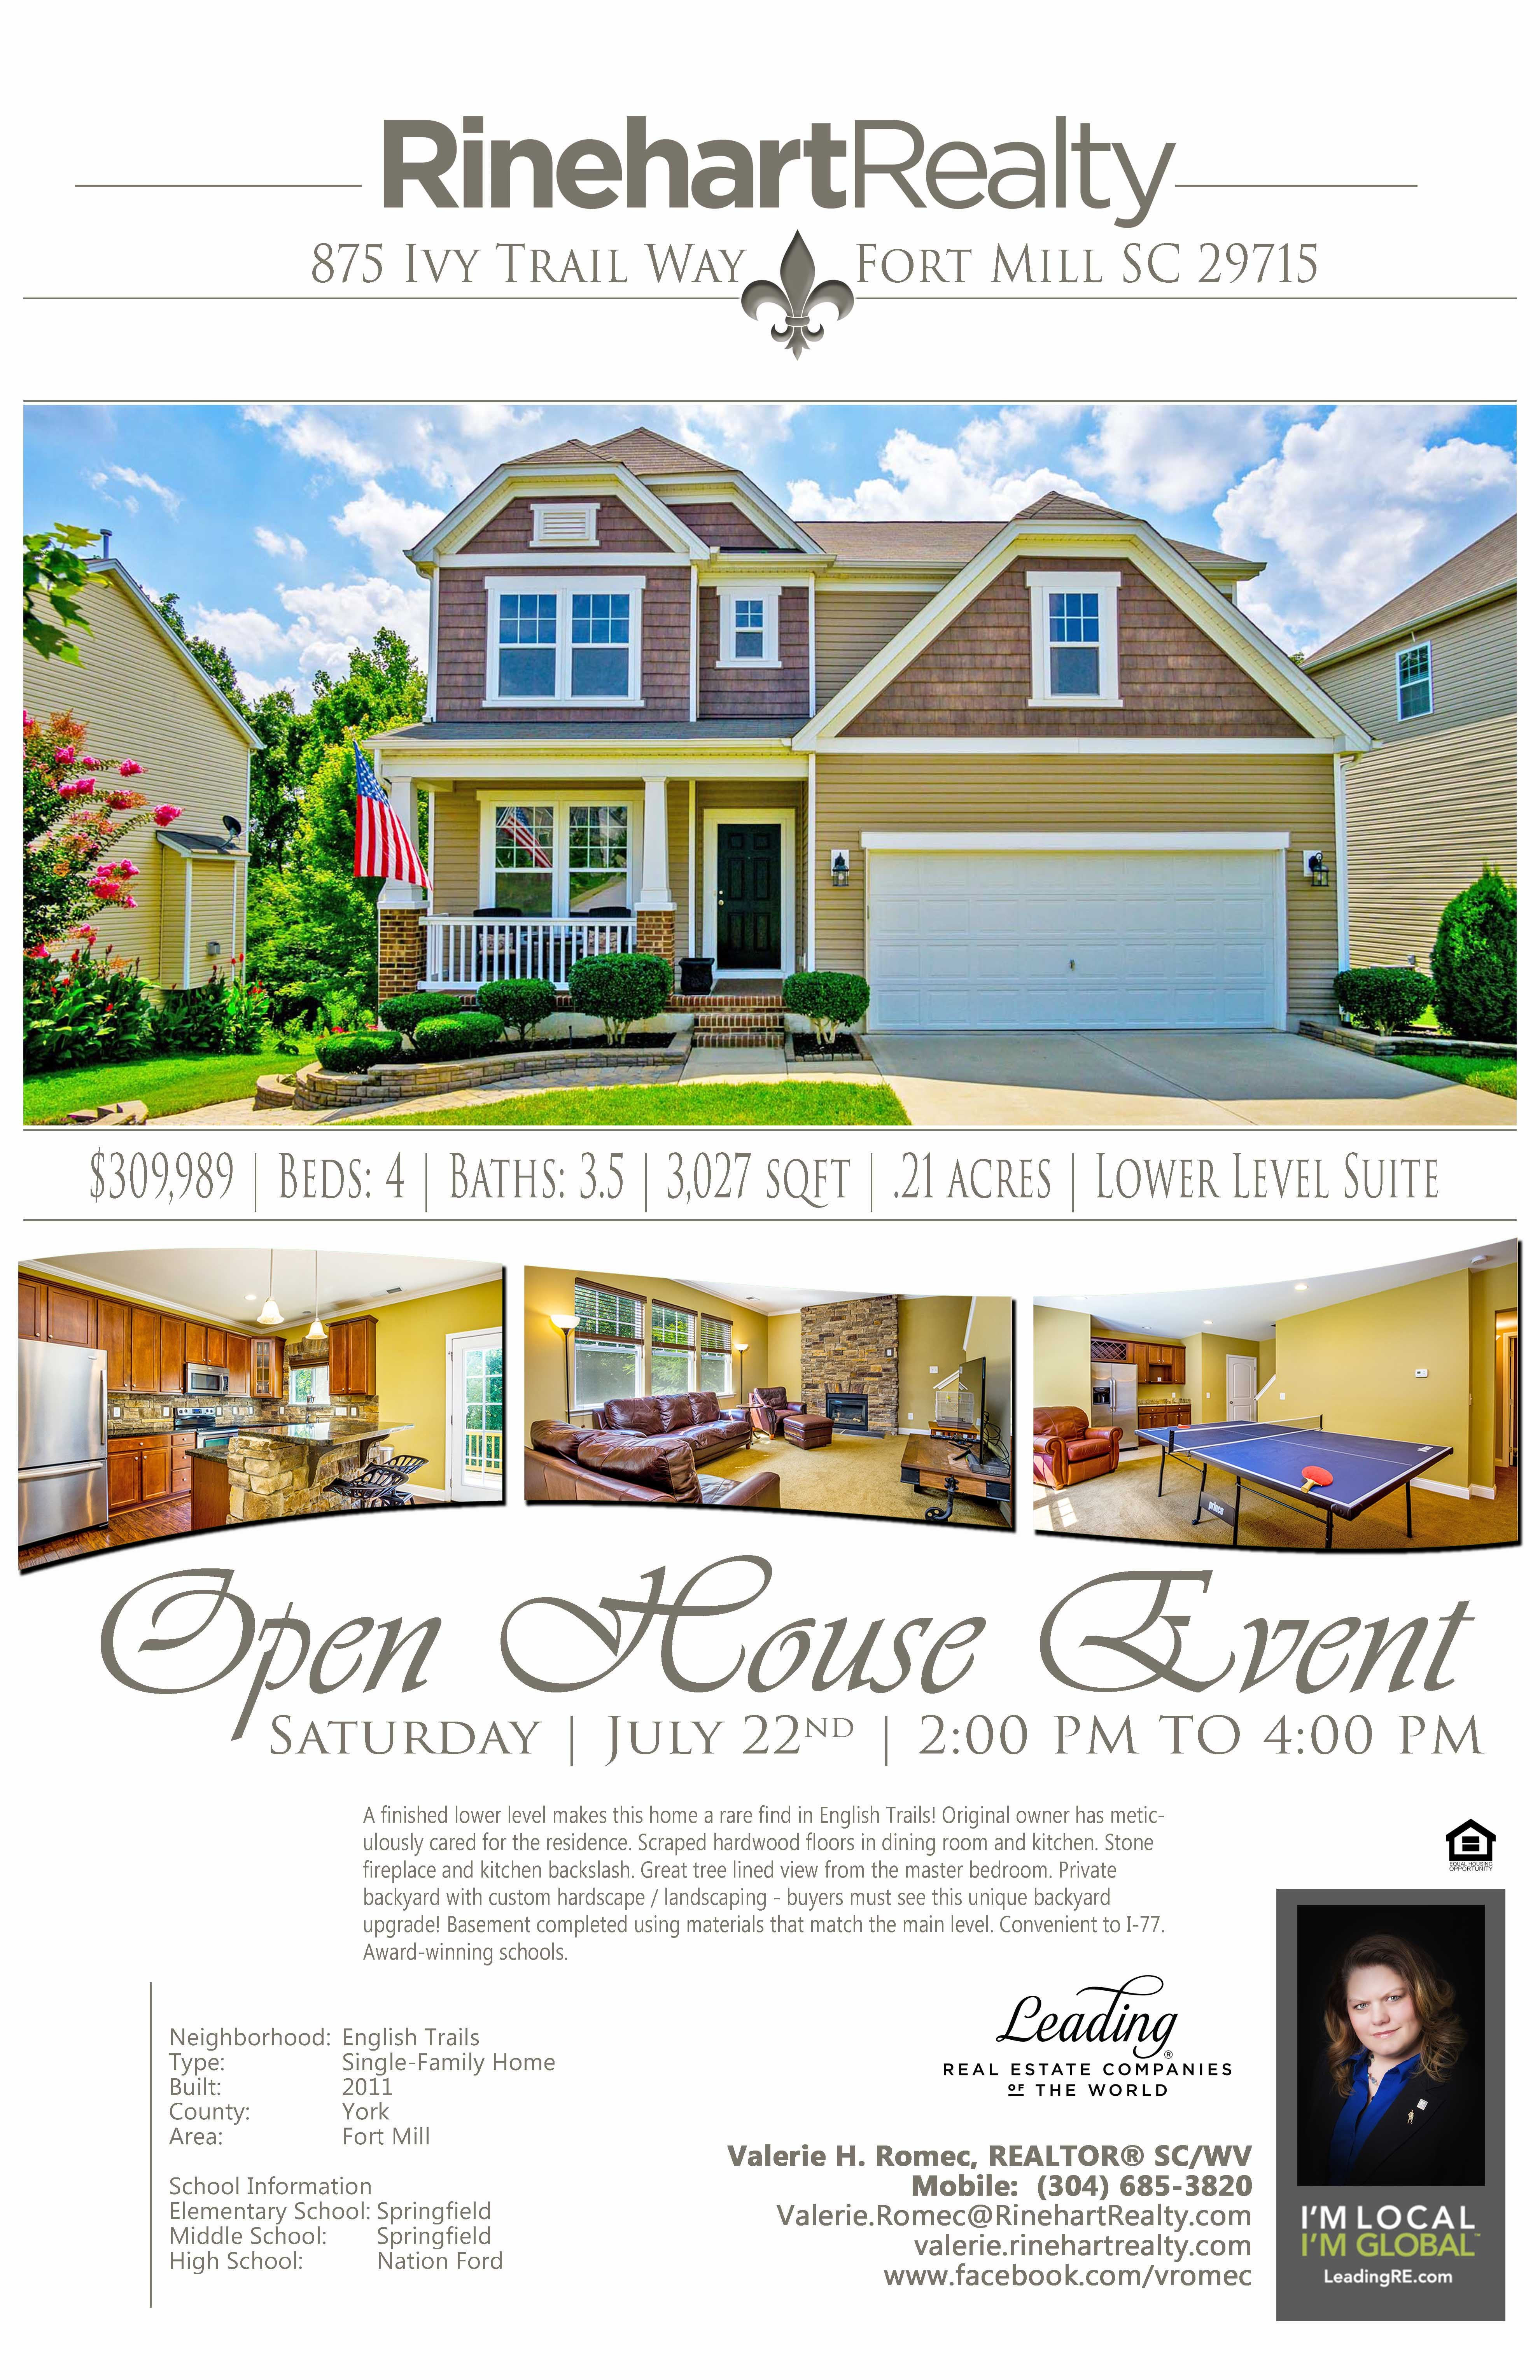 "OPEN HOUSE: Saturday, July 22nd | 2:00 pm to 4:00 pm 875 Ivy Trail Way, Fort Mill, SC 29715 PRICE: $334,900 Beds: 4 | Baths: 3.5 | 3,027 sqft | .21 acres This beautifully finished cul-de-sac home makes this a rare find in English Trails. House backs up to wooded buffer with mature trees. Home has many upgrades - hand scraped wood flooring, upgraded carpet and 6"" baseboards, stone fireplace and kitchen backsplash, private backyard with spectacular views, extensive hardscape/landscape and irrigation. High-end play area equipment and storage shed convey with this unique backyard. Convenient to I-77 and award-winning Fort Mill Schools. Hosted by: Valerie H. Romec, REALTOR® SC/WV Mobile: (304) 685-3820 Valerie.Romec@RinehartRealty.com valerie.rinehartrealty.com www.facebook.com/vromec"